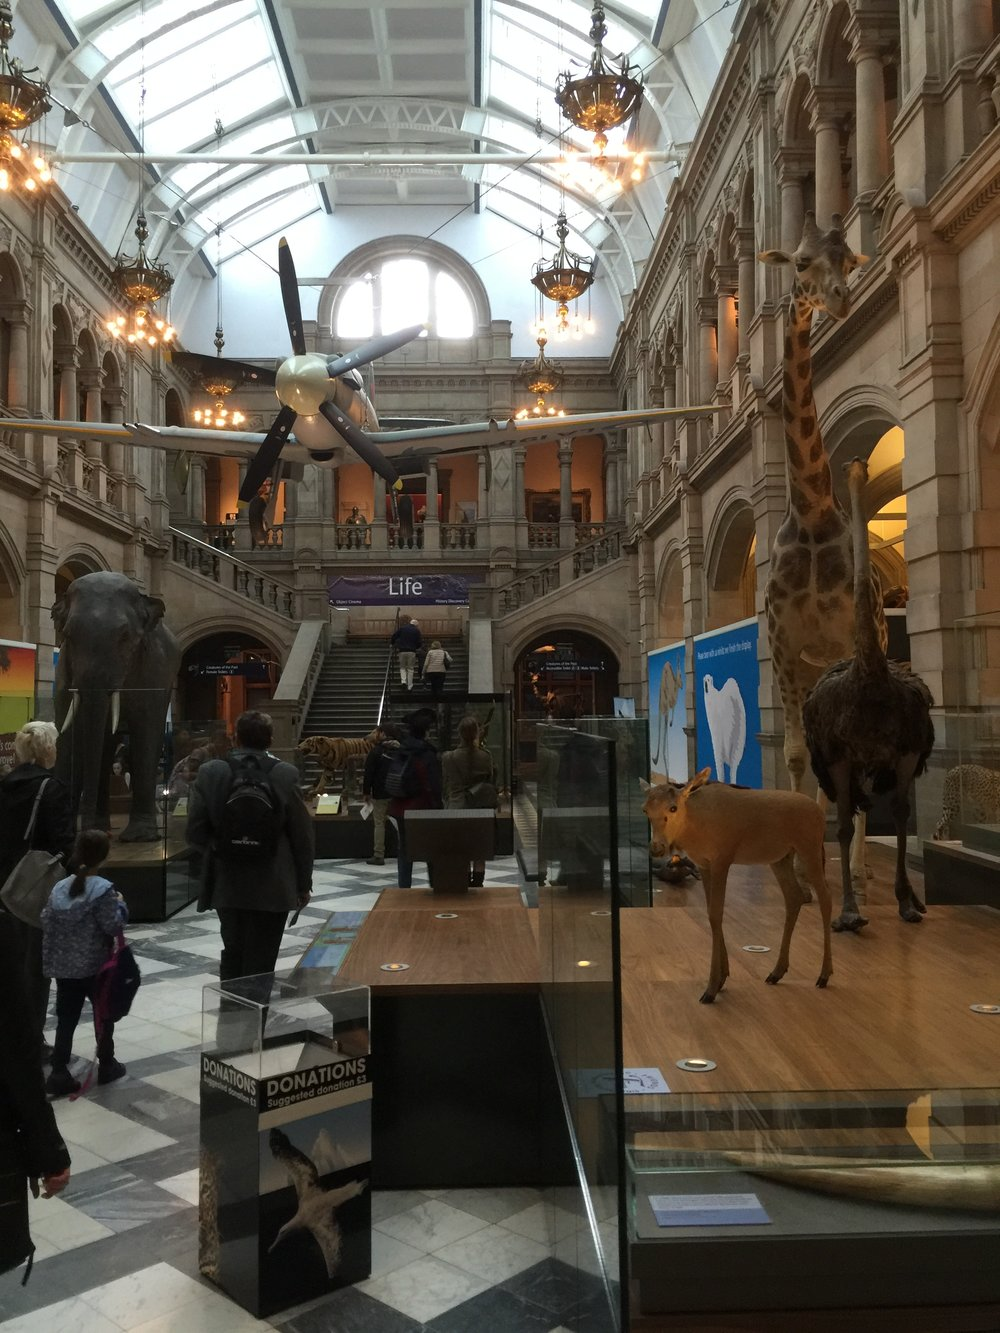 Quite a lot of different interesting exhibits inside the Kelvingrove Museum.